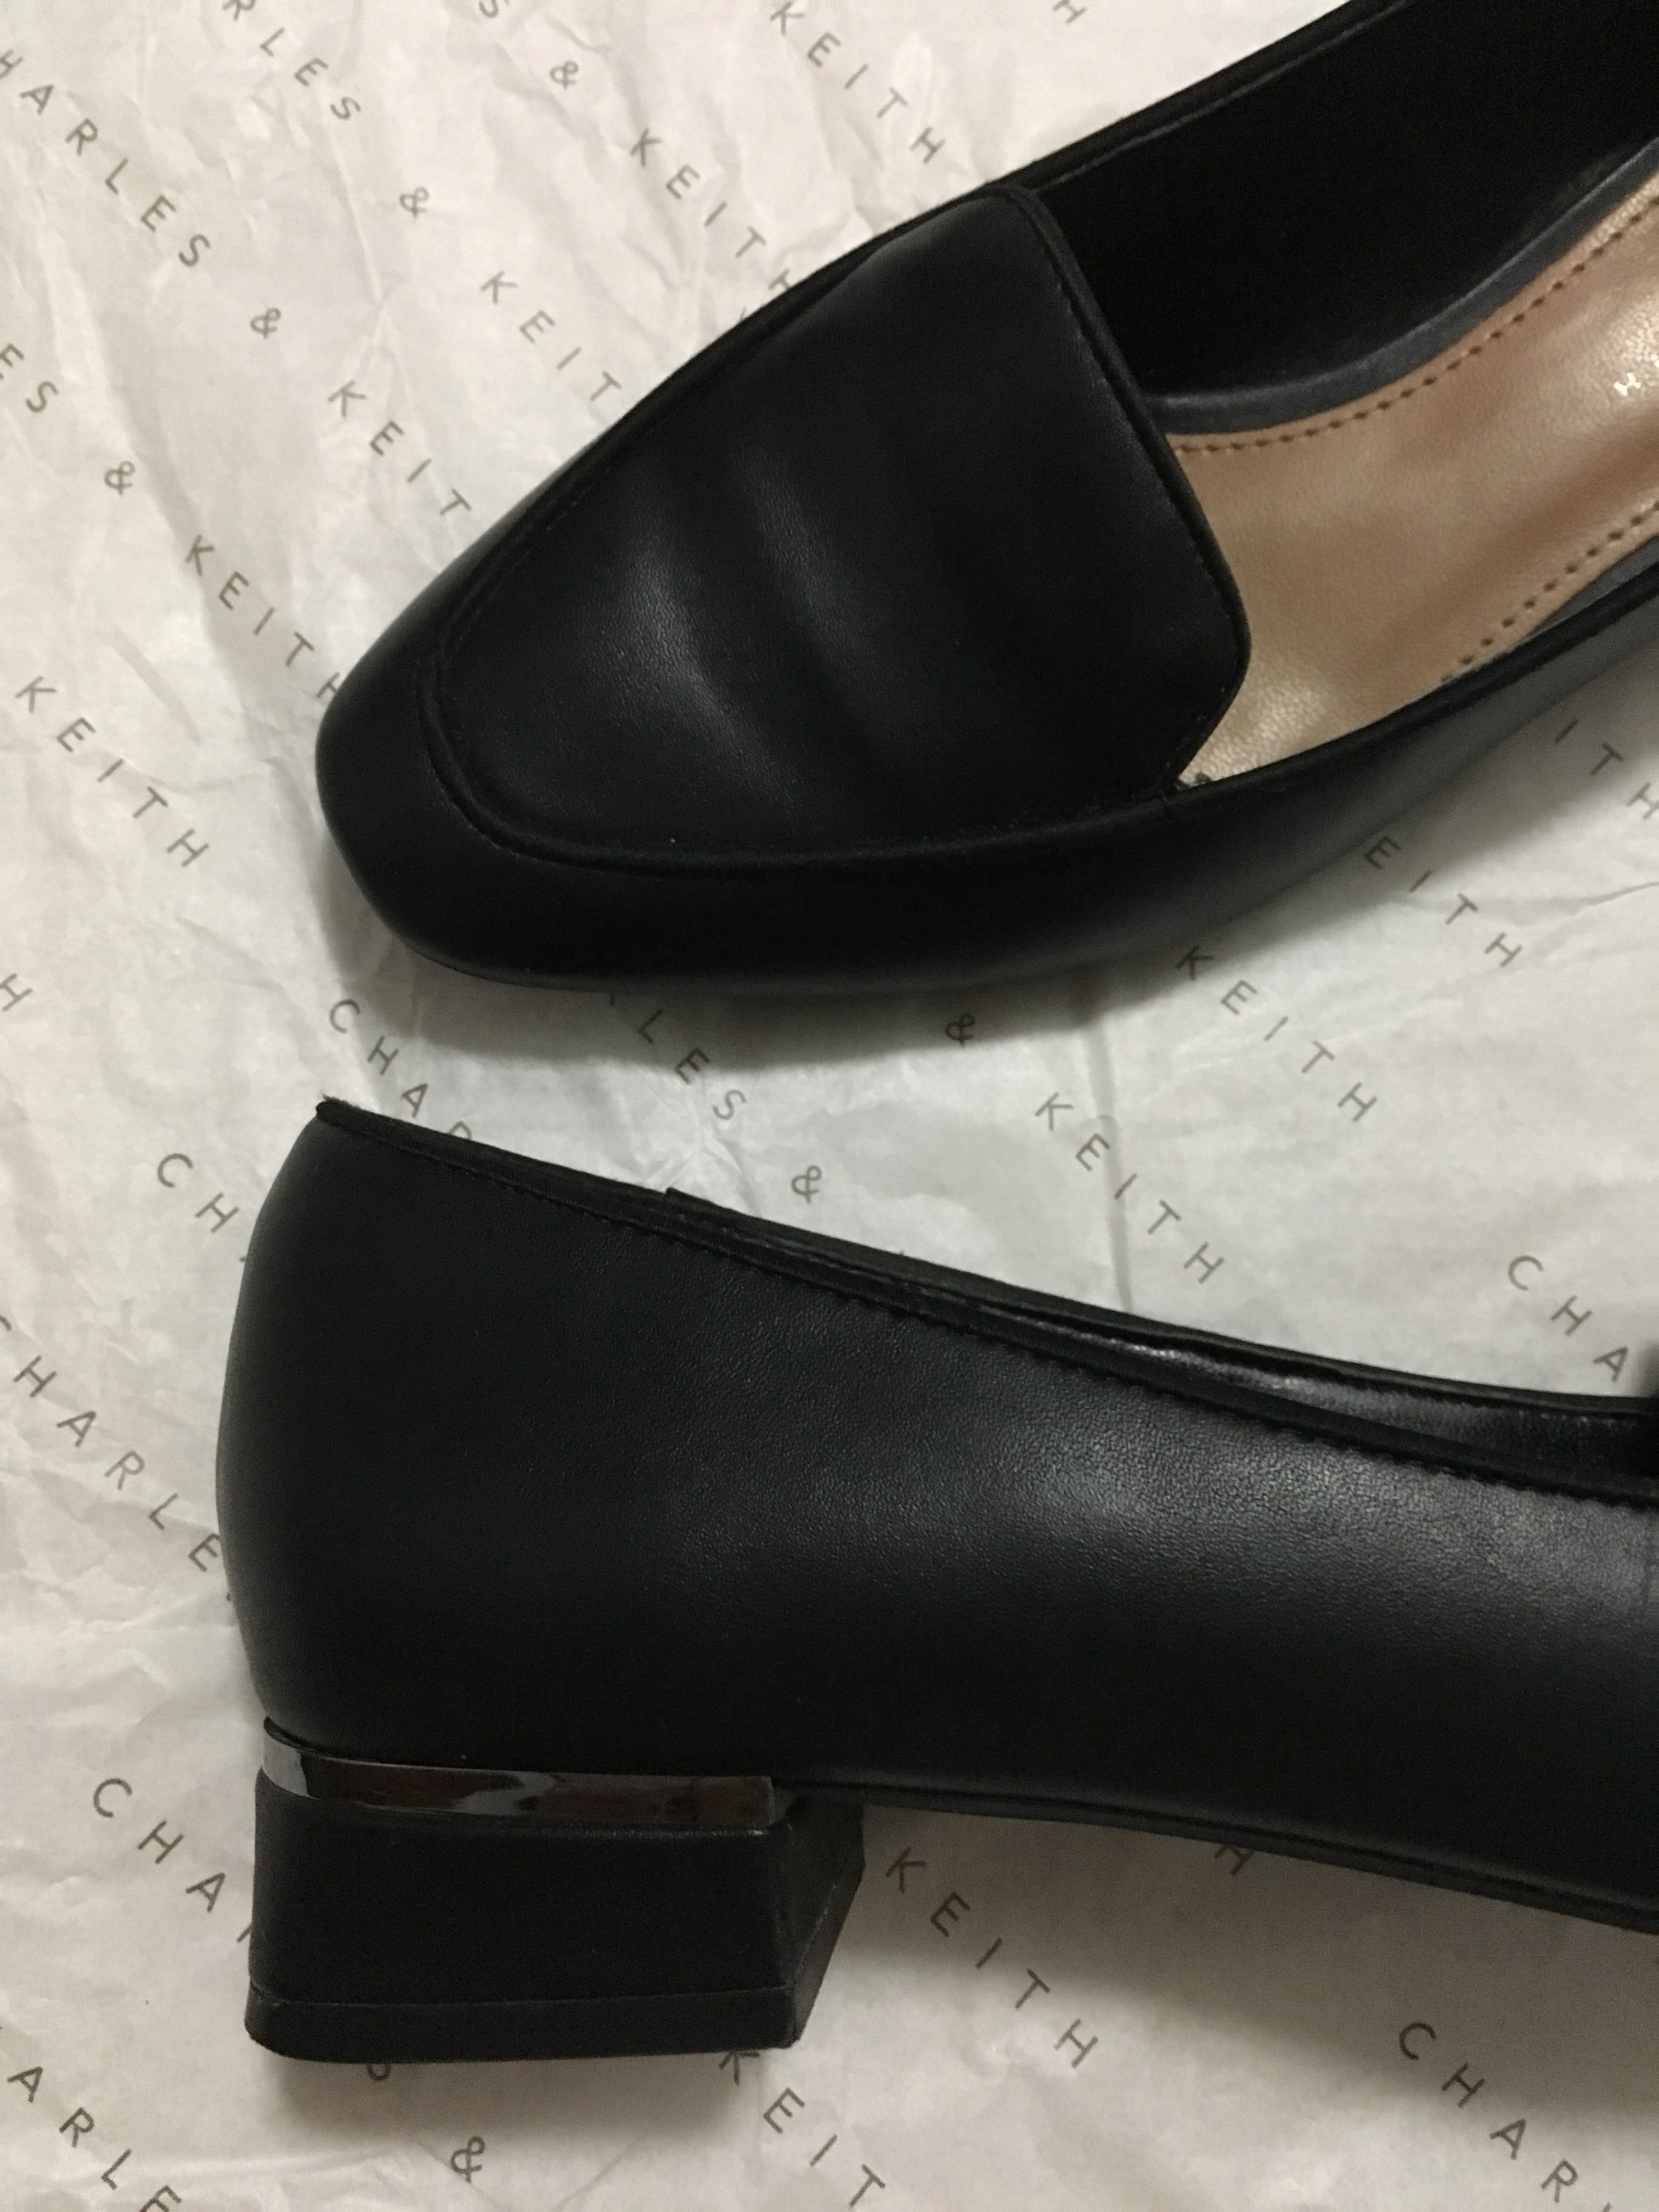 a5f8489bf4ede Charles & Keith black basic loafers with metallic low block heels, Women's  Fashion, Shoes on Carousell